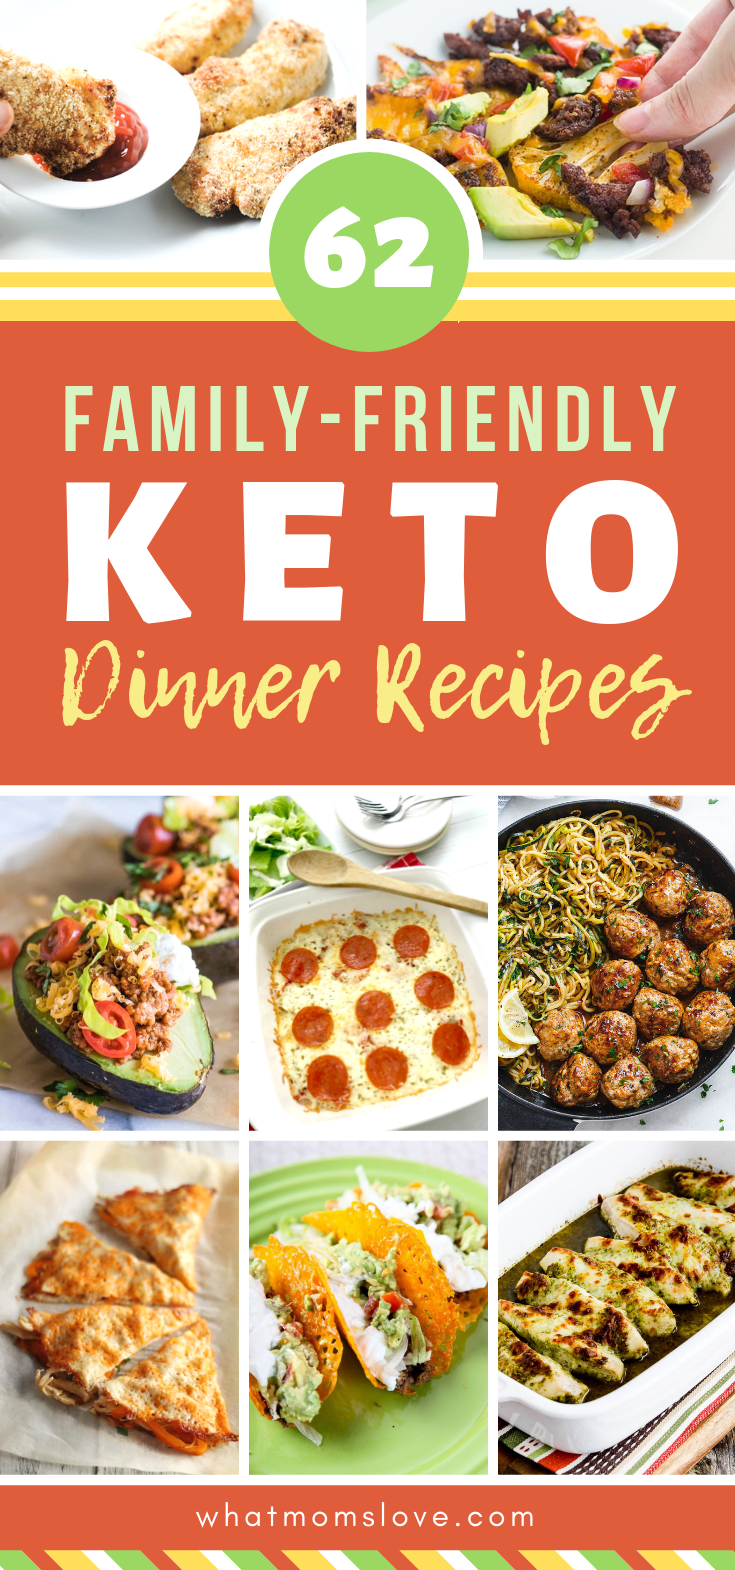 Amazing Dinner Meal Ideas For Keto